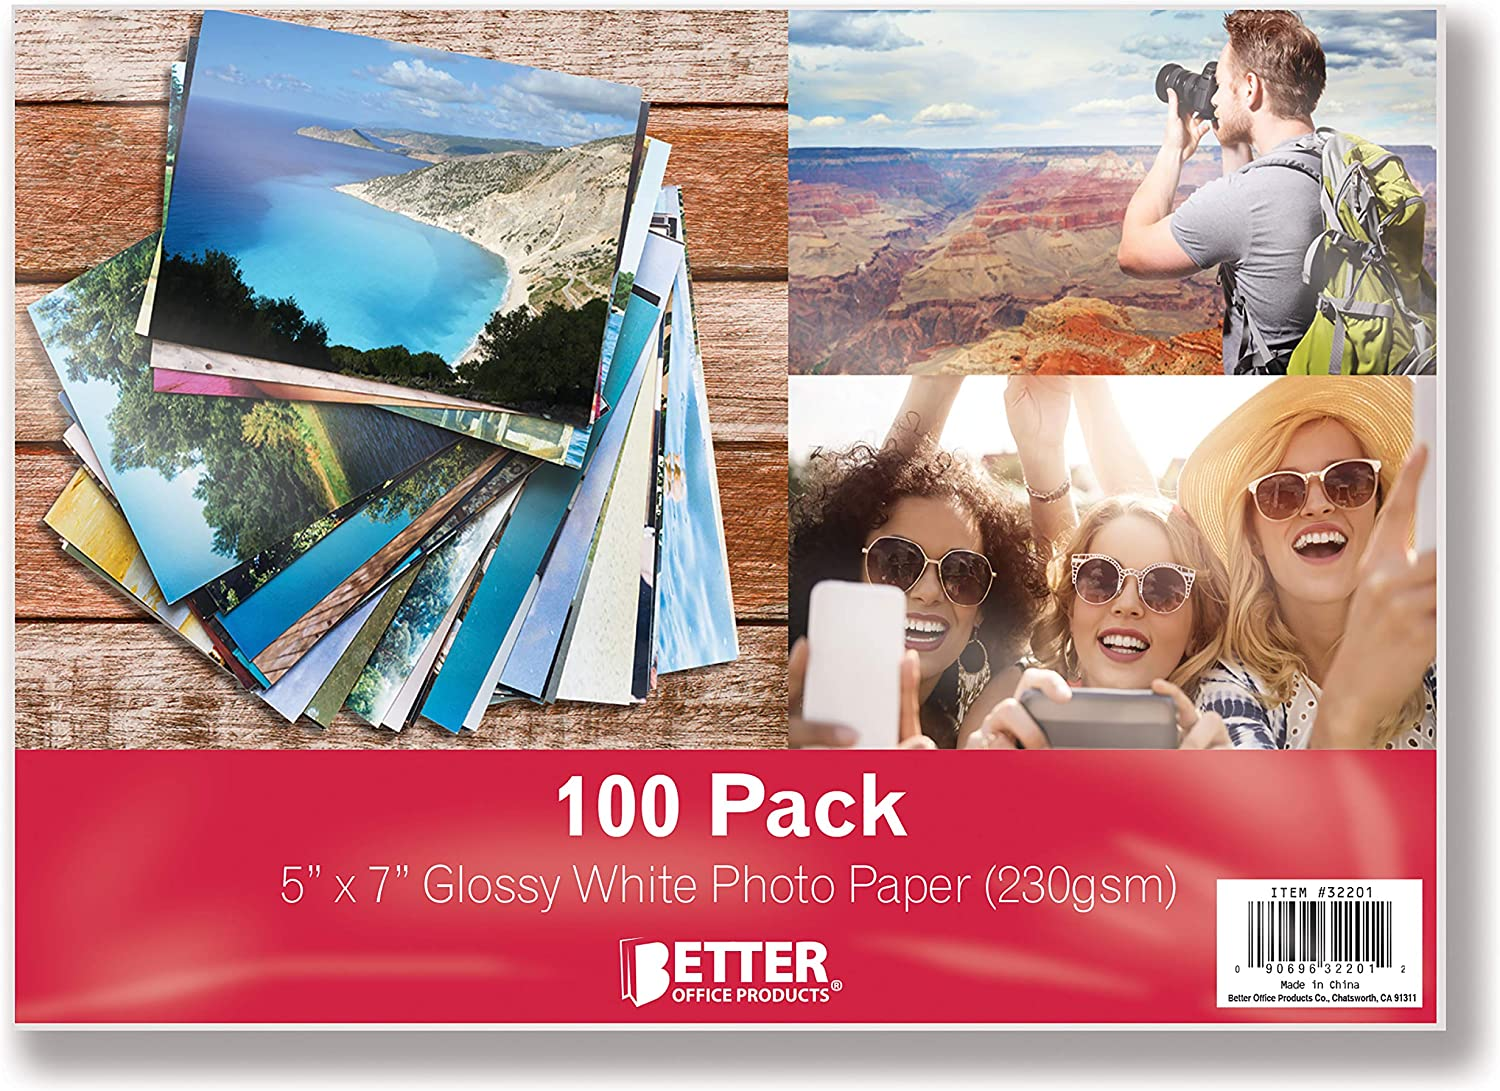 Glossy Photo Paper 5 x 7 inch by Sheets Better 100 Max 41% OFF Cheap mail order sales Pro Office